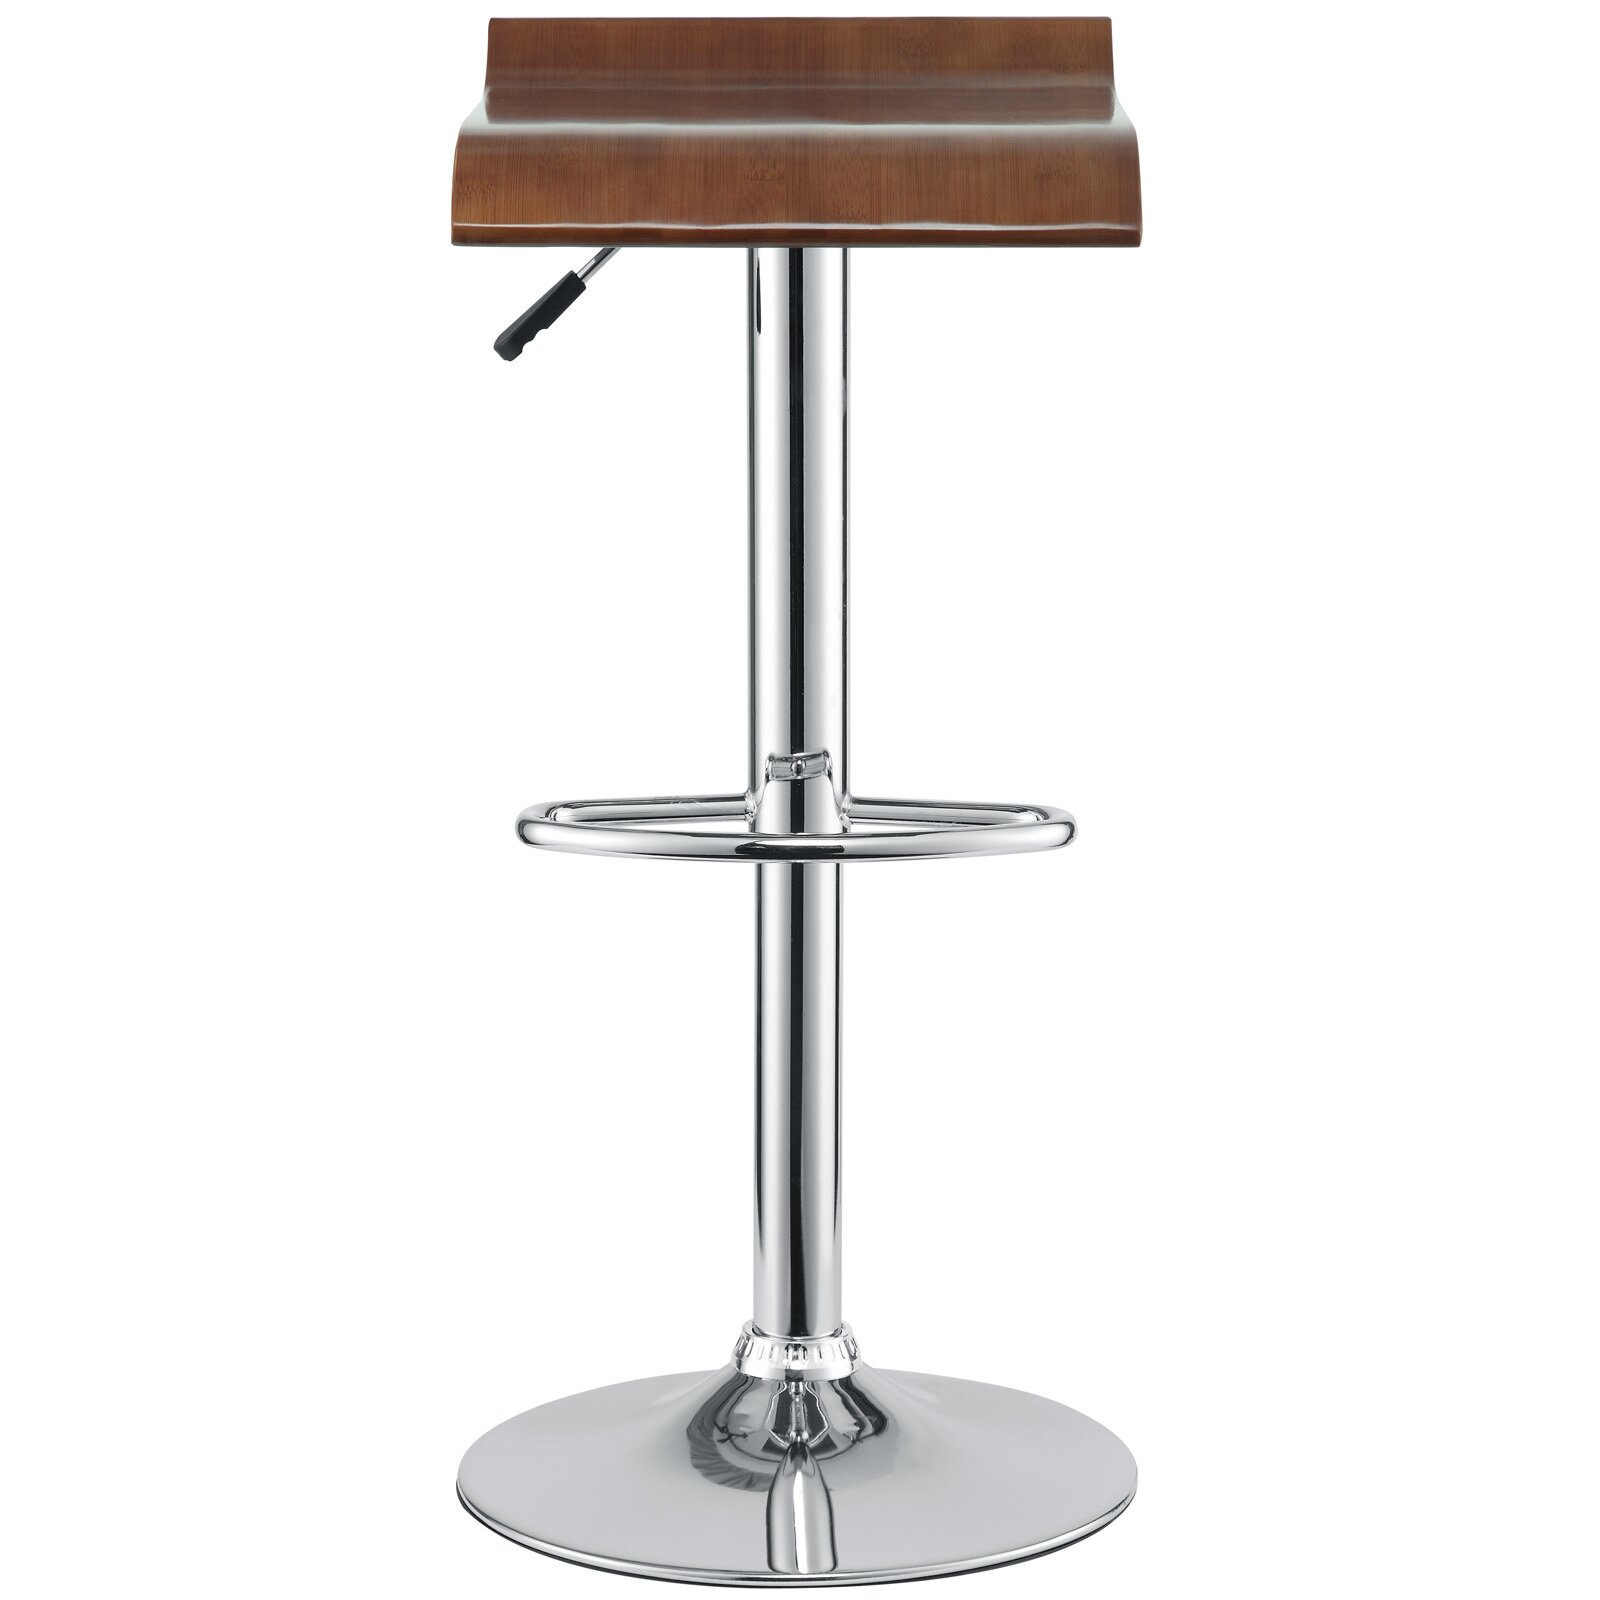 Modway Bentwood Adjustable Height Swivel Bar Stool